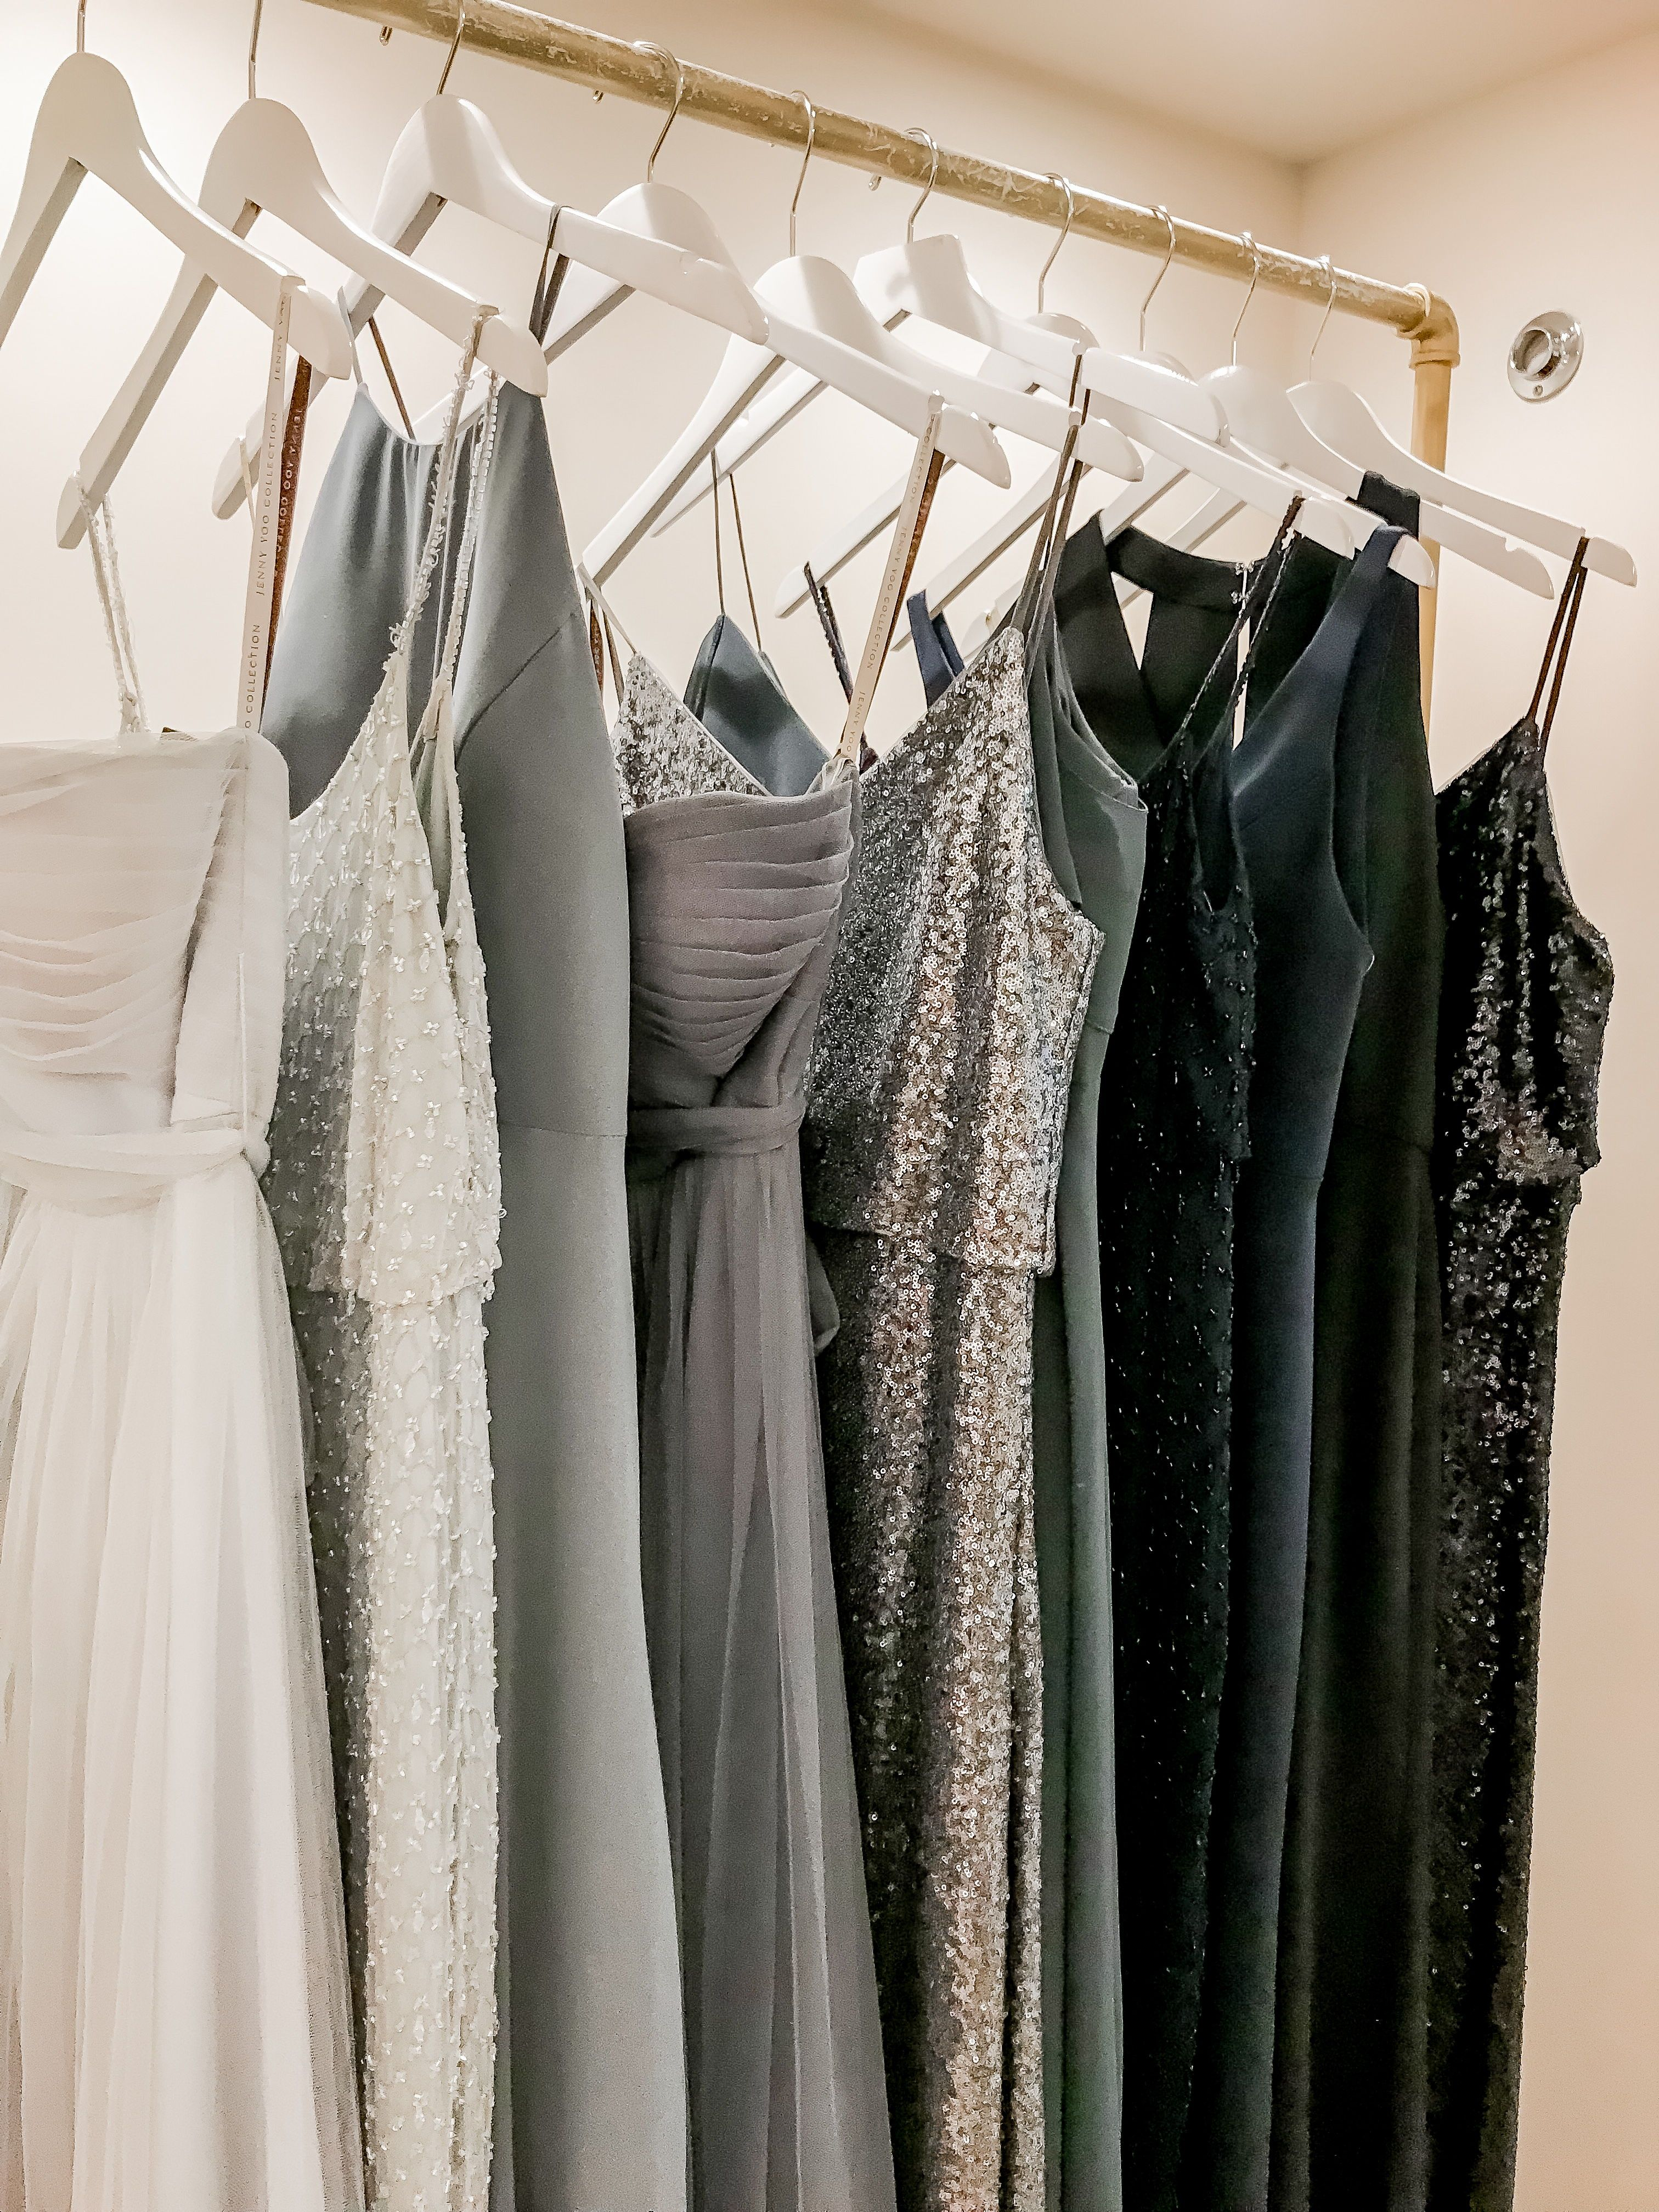 Simply stunning hues of grey and deep blue jenny yoo collection